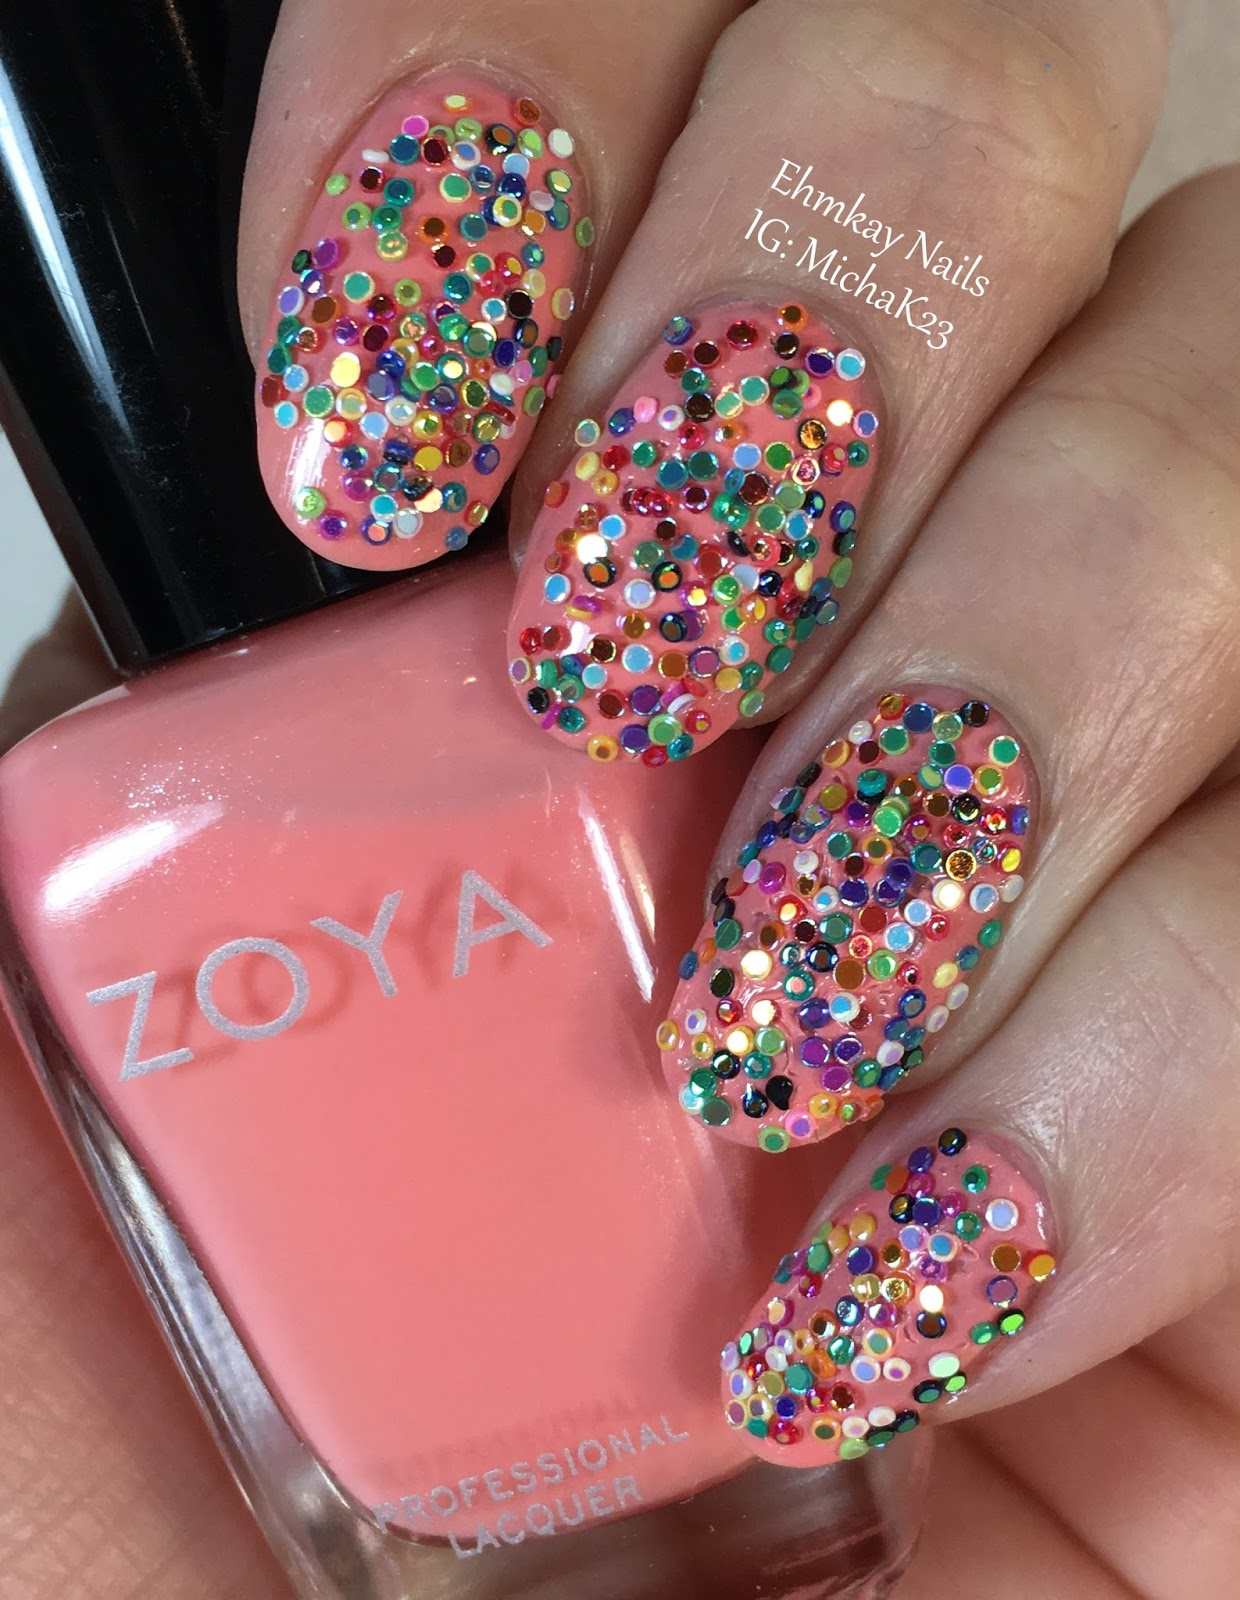 Nail Art Trends: Ehmkay Nails: Sprinkles Nail Art With Lady Queen Nail Gems